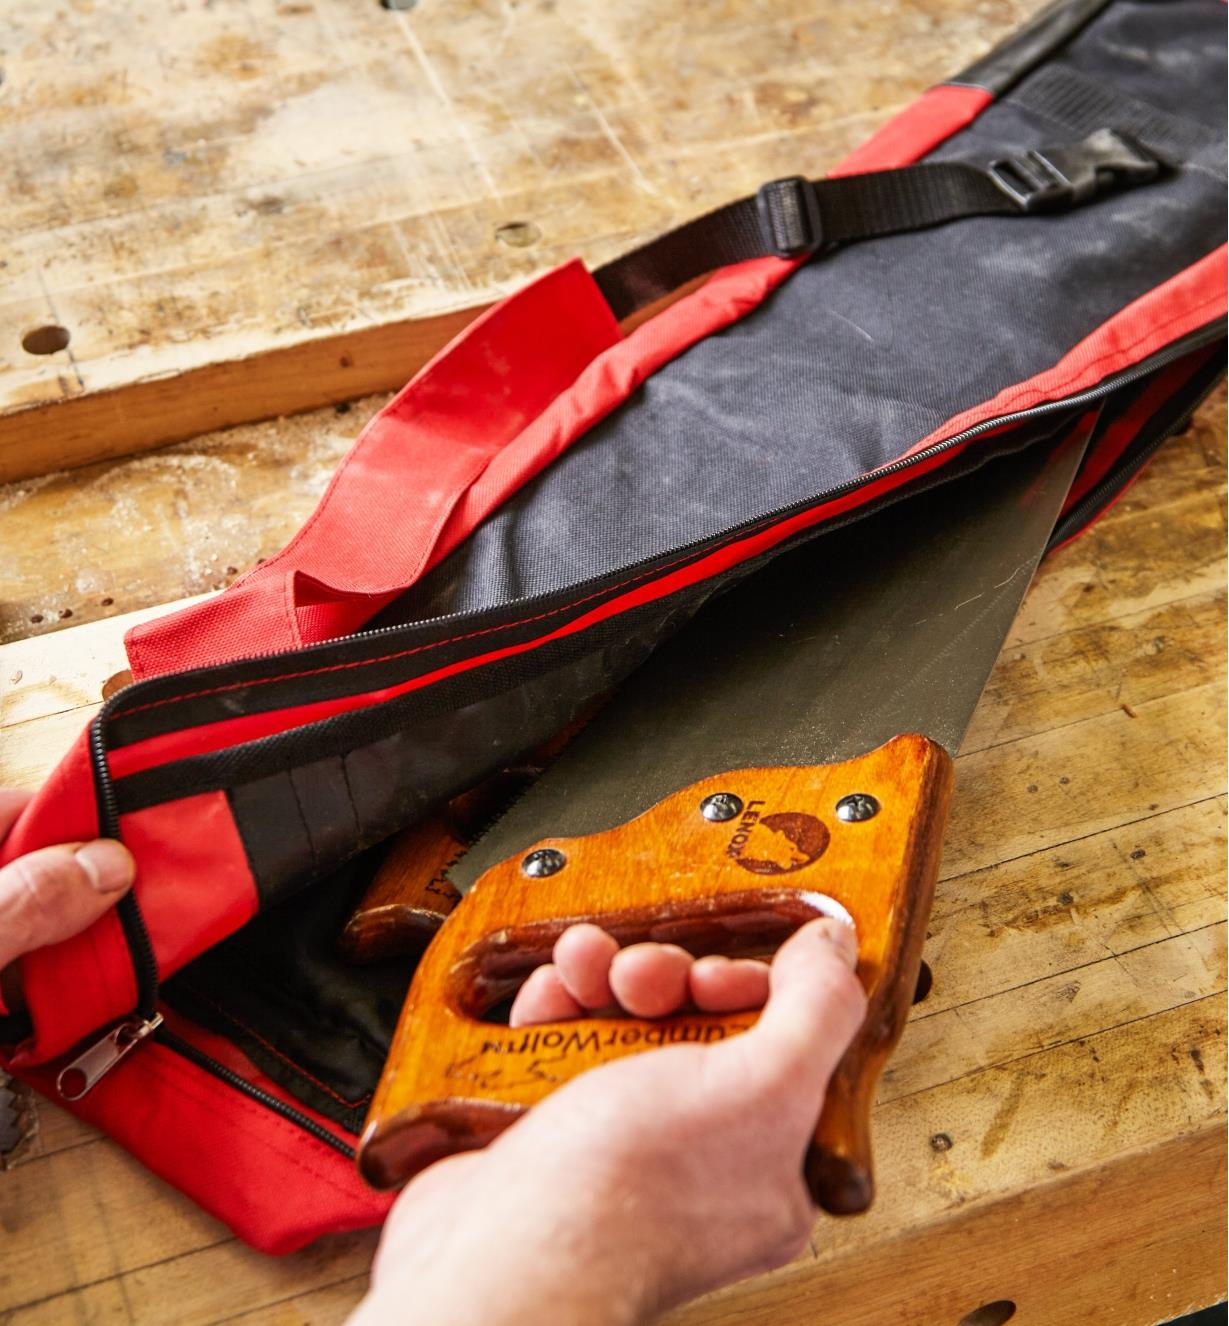 Placing a saw in the Carpenter's Saw Bag